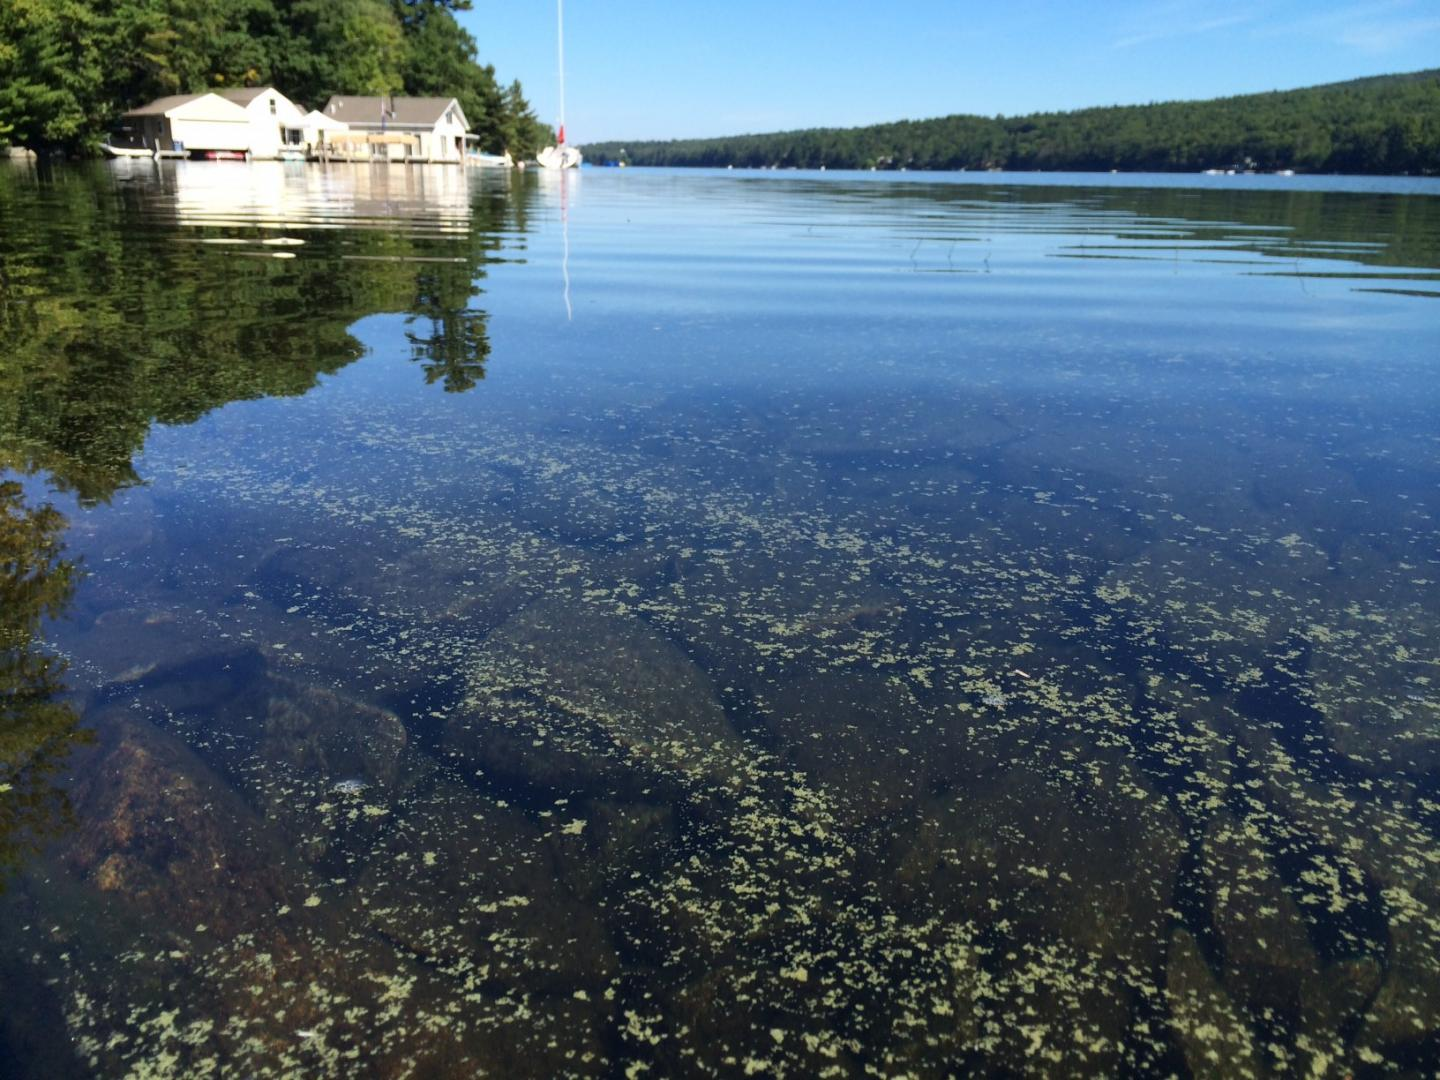 A Cyanobacterial Bloom on the Surface of Lake Sunapee, N.H.